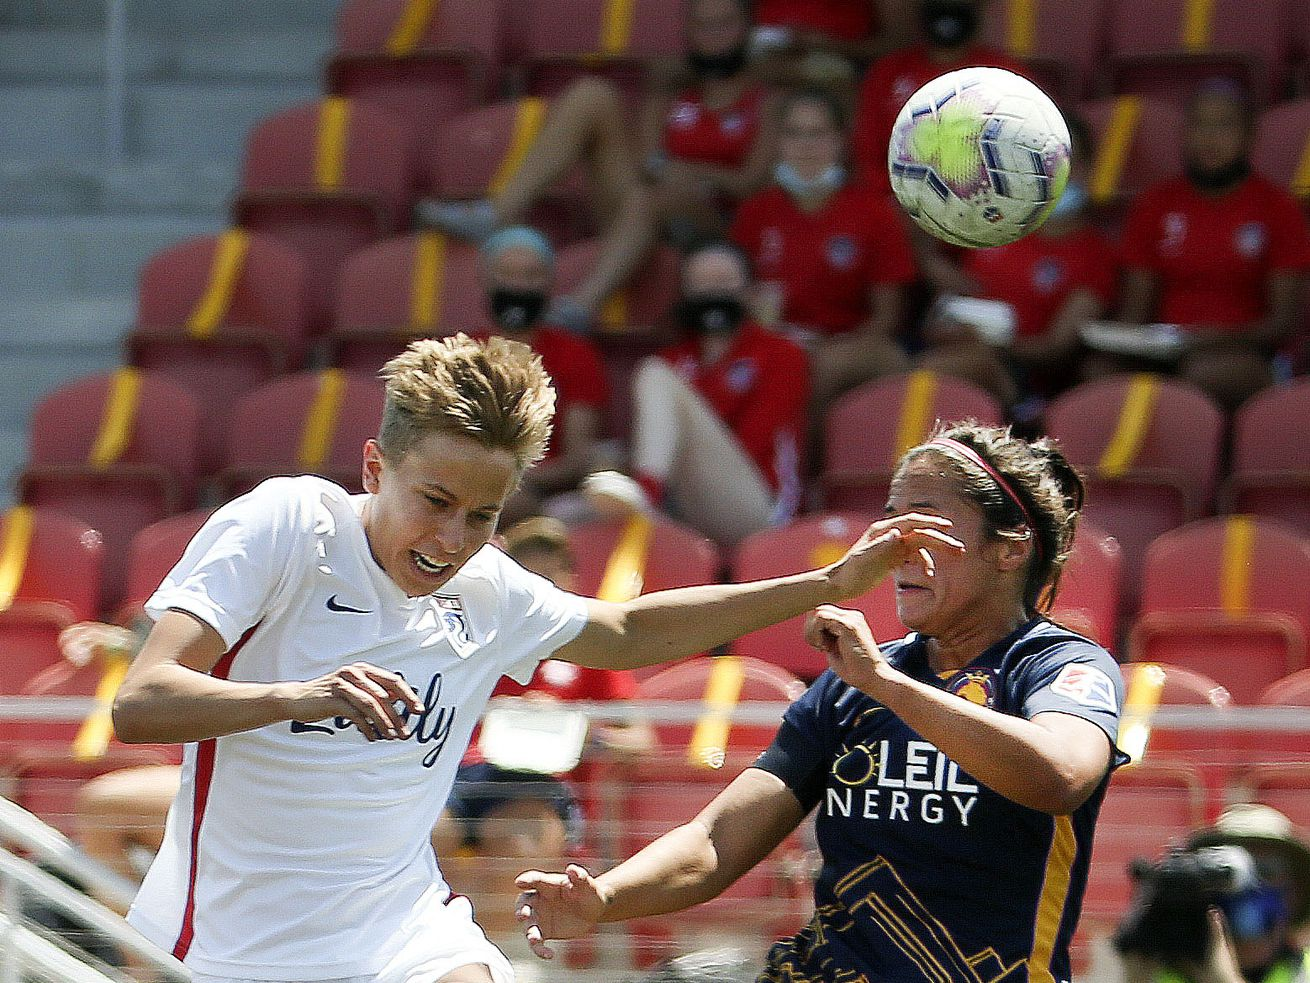 OL Reign player Rebecca Quinn (5) and the Utah Royals' Taylor Leach (24) compete for the ball in a 2020 NWSL Challenge Cup game at Zions Bank Stadium in Herriman on Wednesday, July 8, 2020.